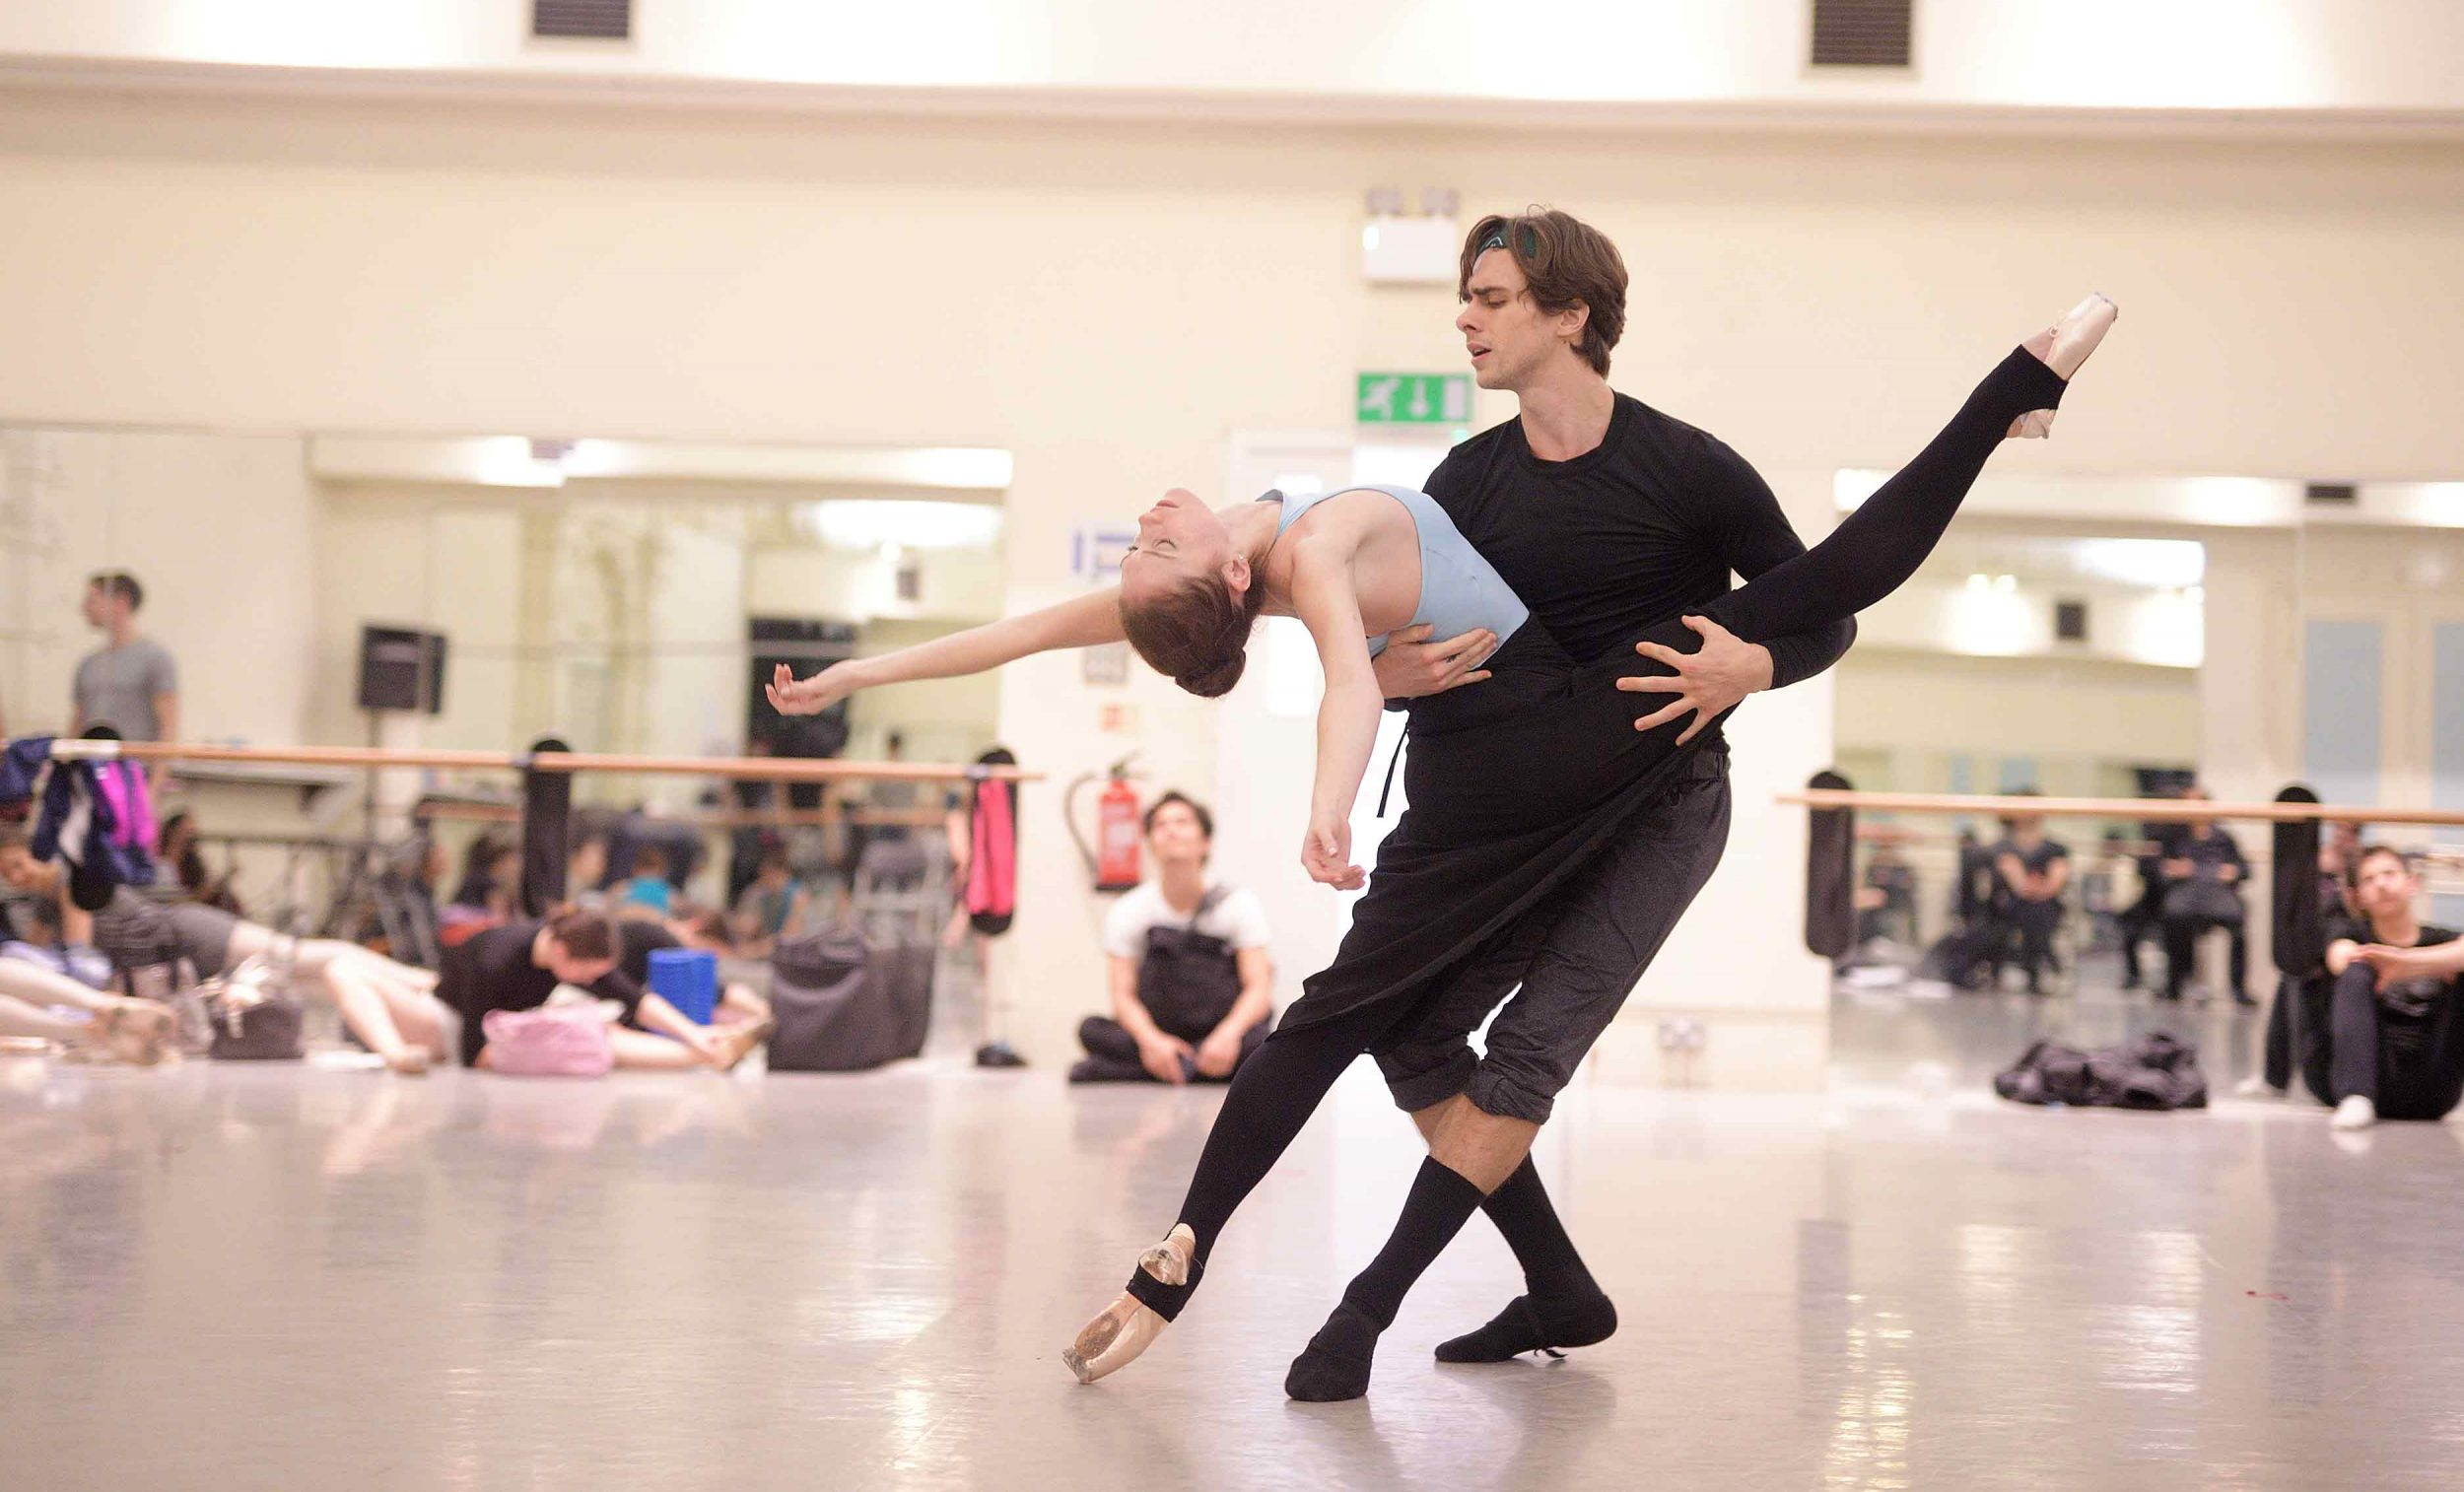 Alison-McWhinney-and-Francesco-Gabriele-Frola-in-rehearsals-for-Manon-(c)-Laurent-Liotardo-1_WEB